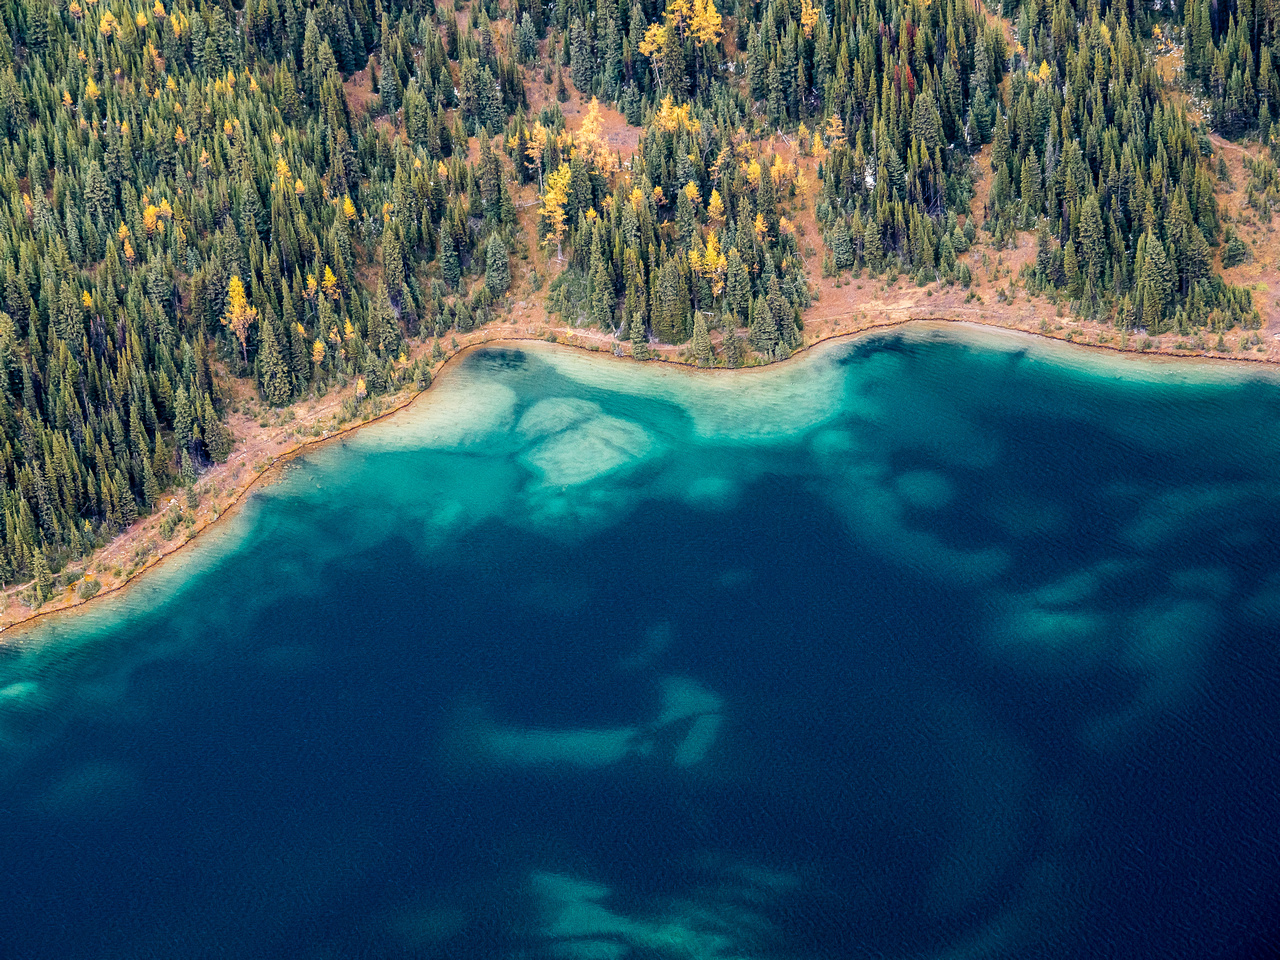 Brilliant colors of Cerulean Lake. Elizabeth Lake just visible at top.